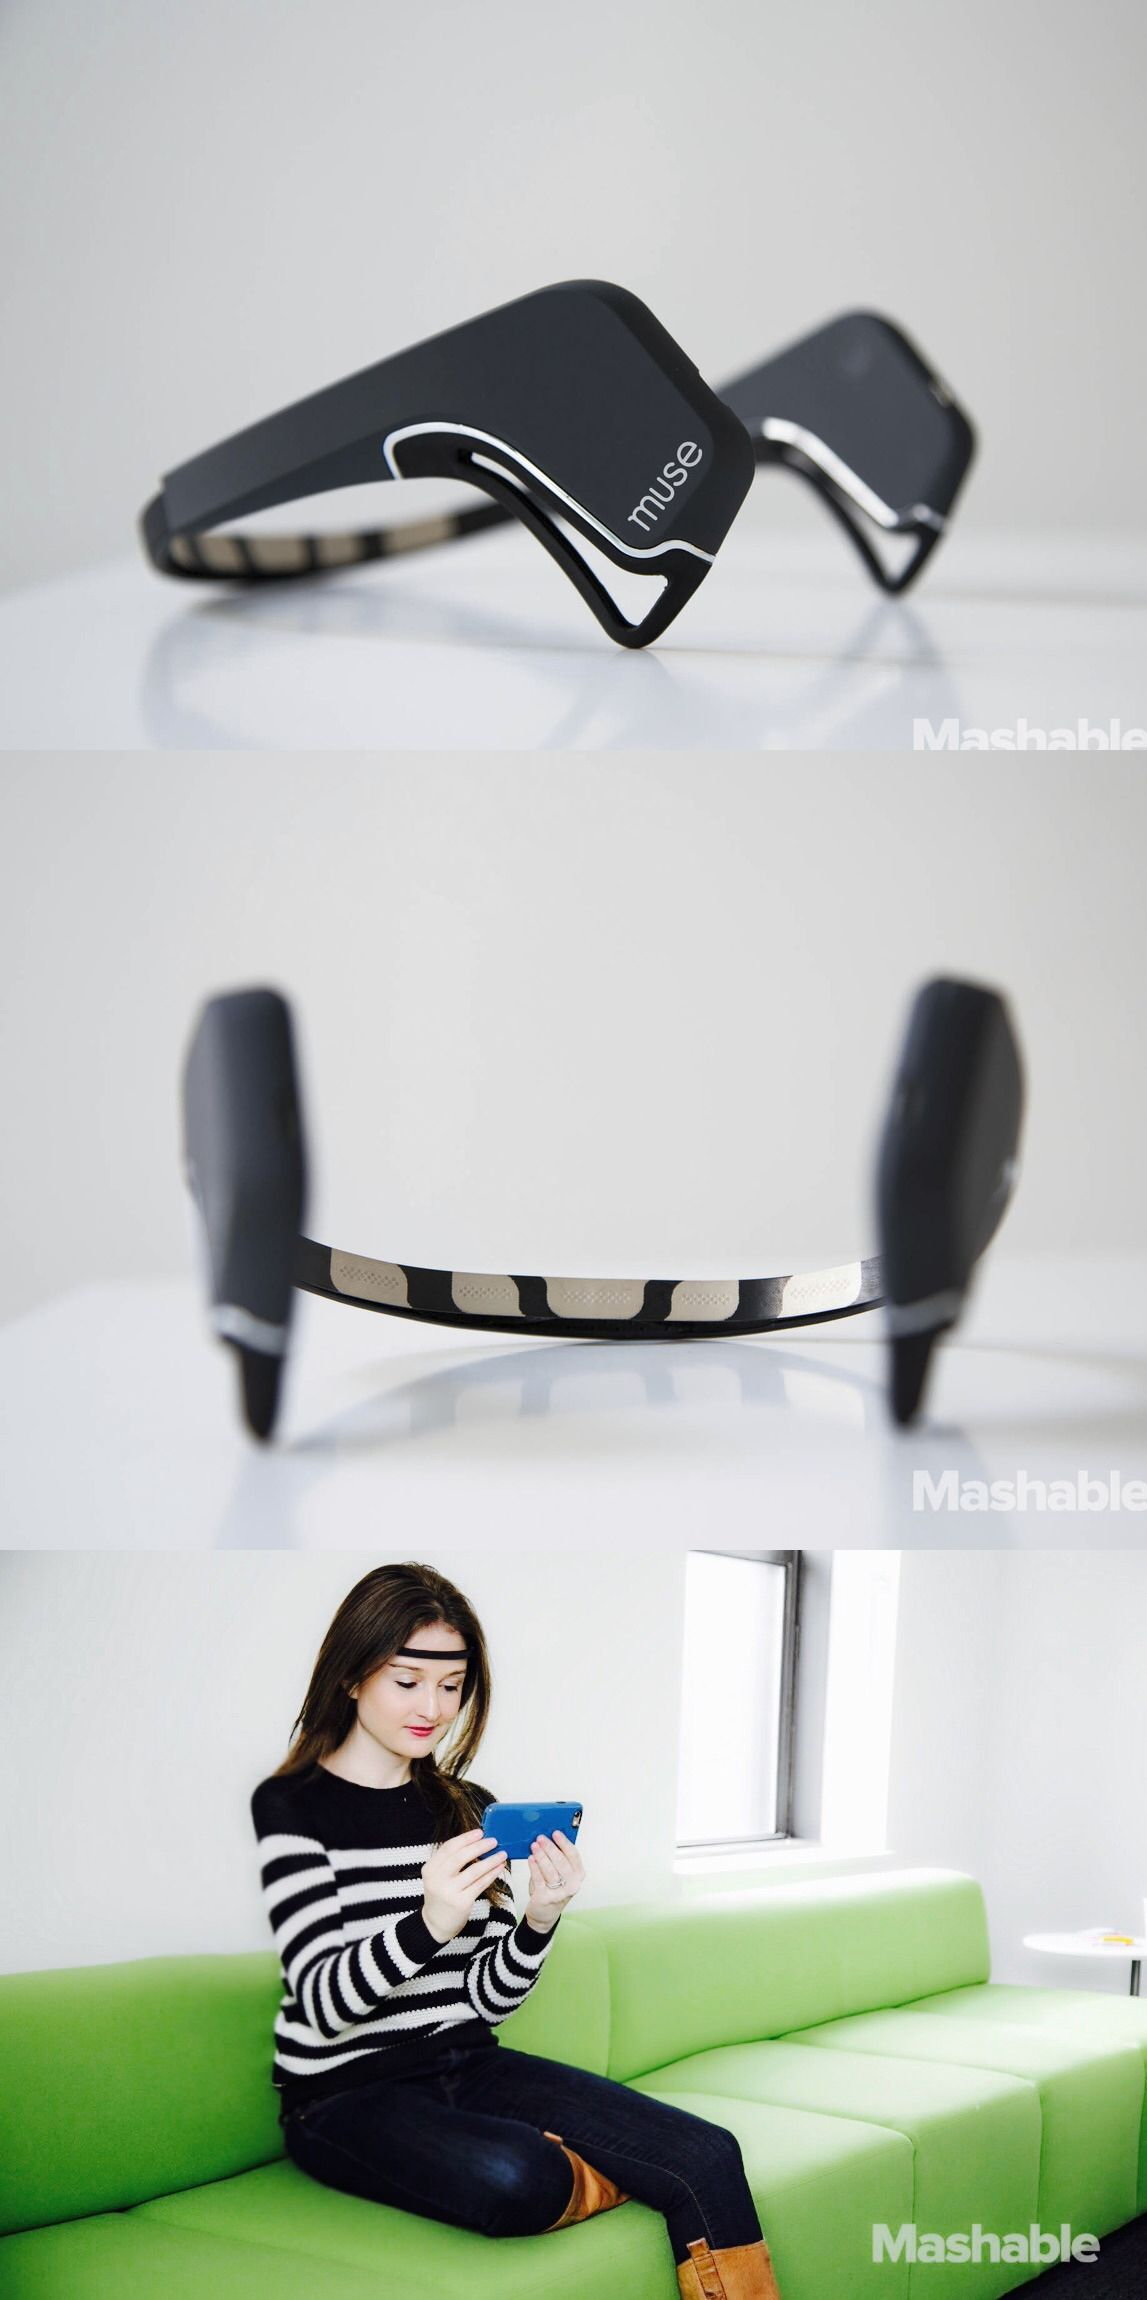 The Muse is a brain-sensing headband that pairs with your phone to help you…